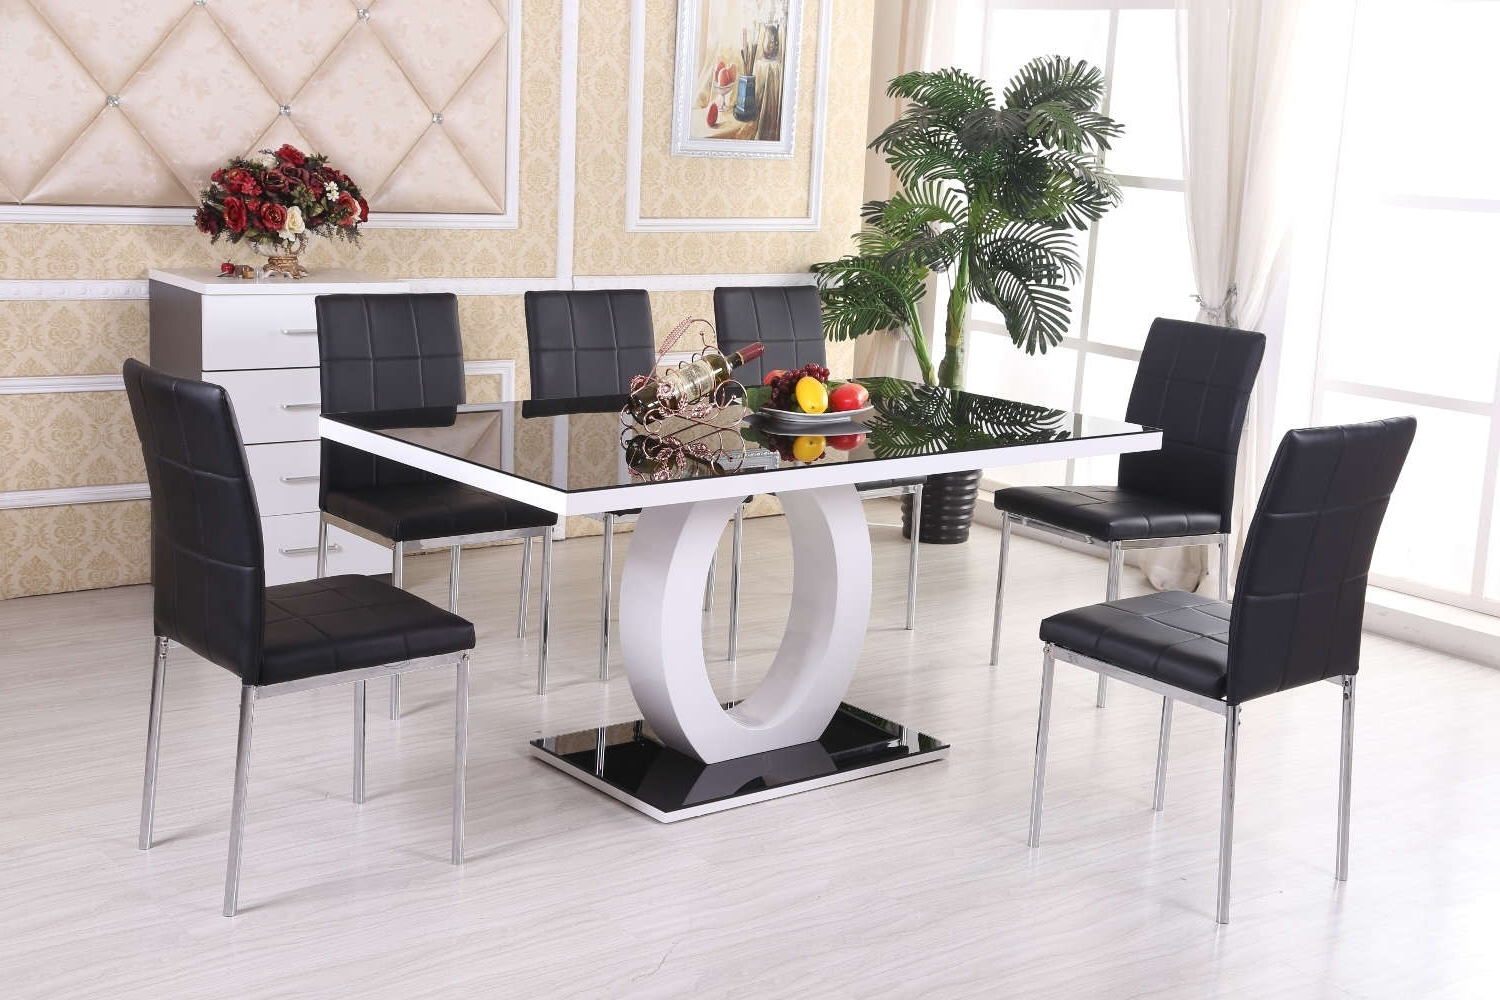 Dining Table Set With 6 Chairs – Castrophotos With Well Liked Black Glass Extending Dining Tables 6 Chairs (Gallery 14 of 25)